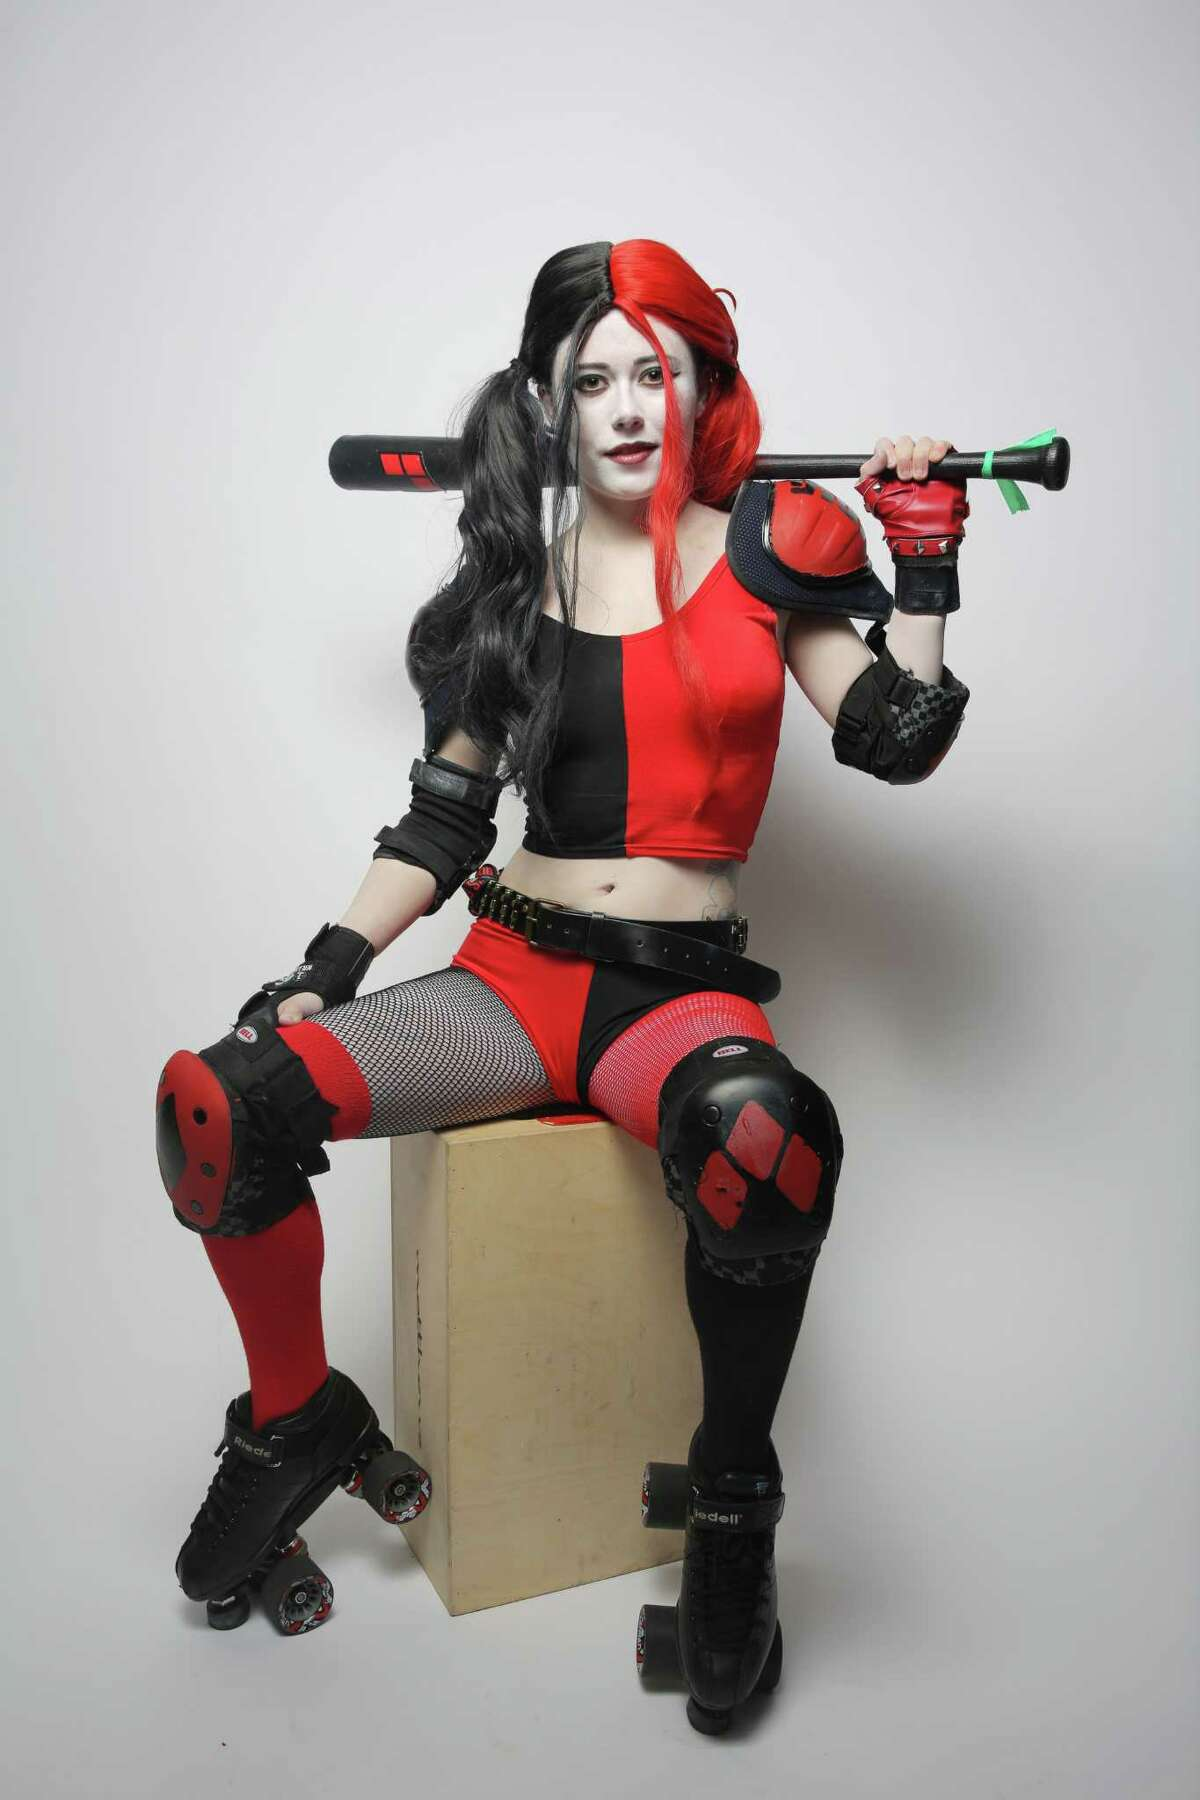 Nessa Sweeny, of Seattle, poses for a portrait as Harley Quinn at Emerald City Comic Con, Friday, March 2, 2018.